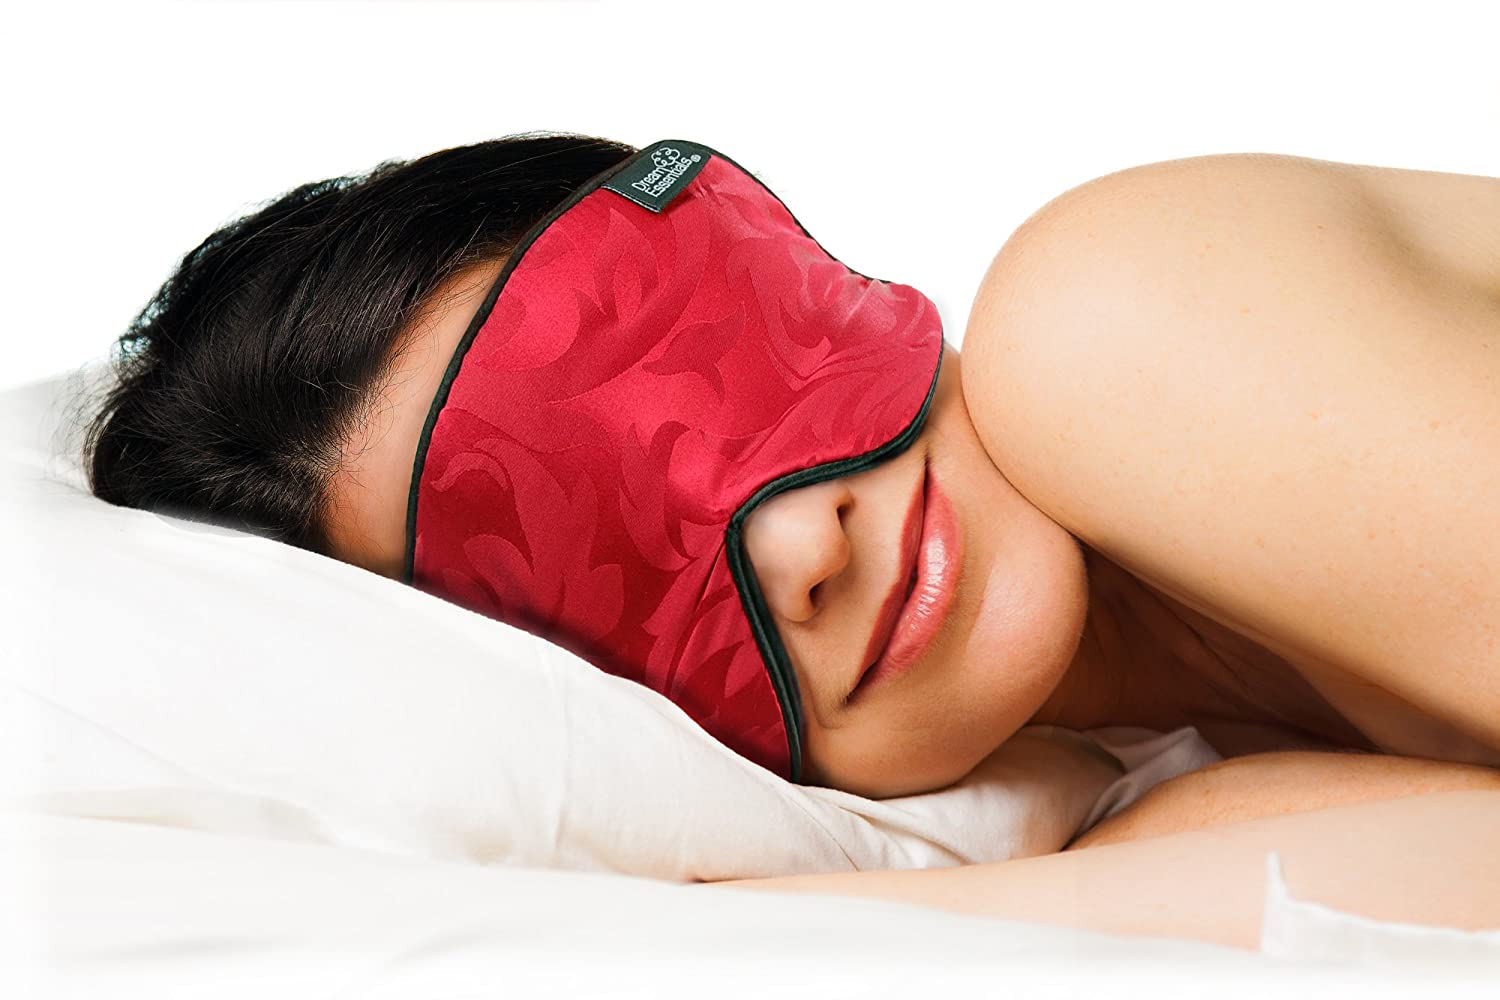 This 10 Sleep Mask Is Knocking People Out Cold This 10 Sleep Mask Is Knocking People Out Cold new foto